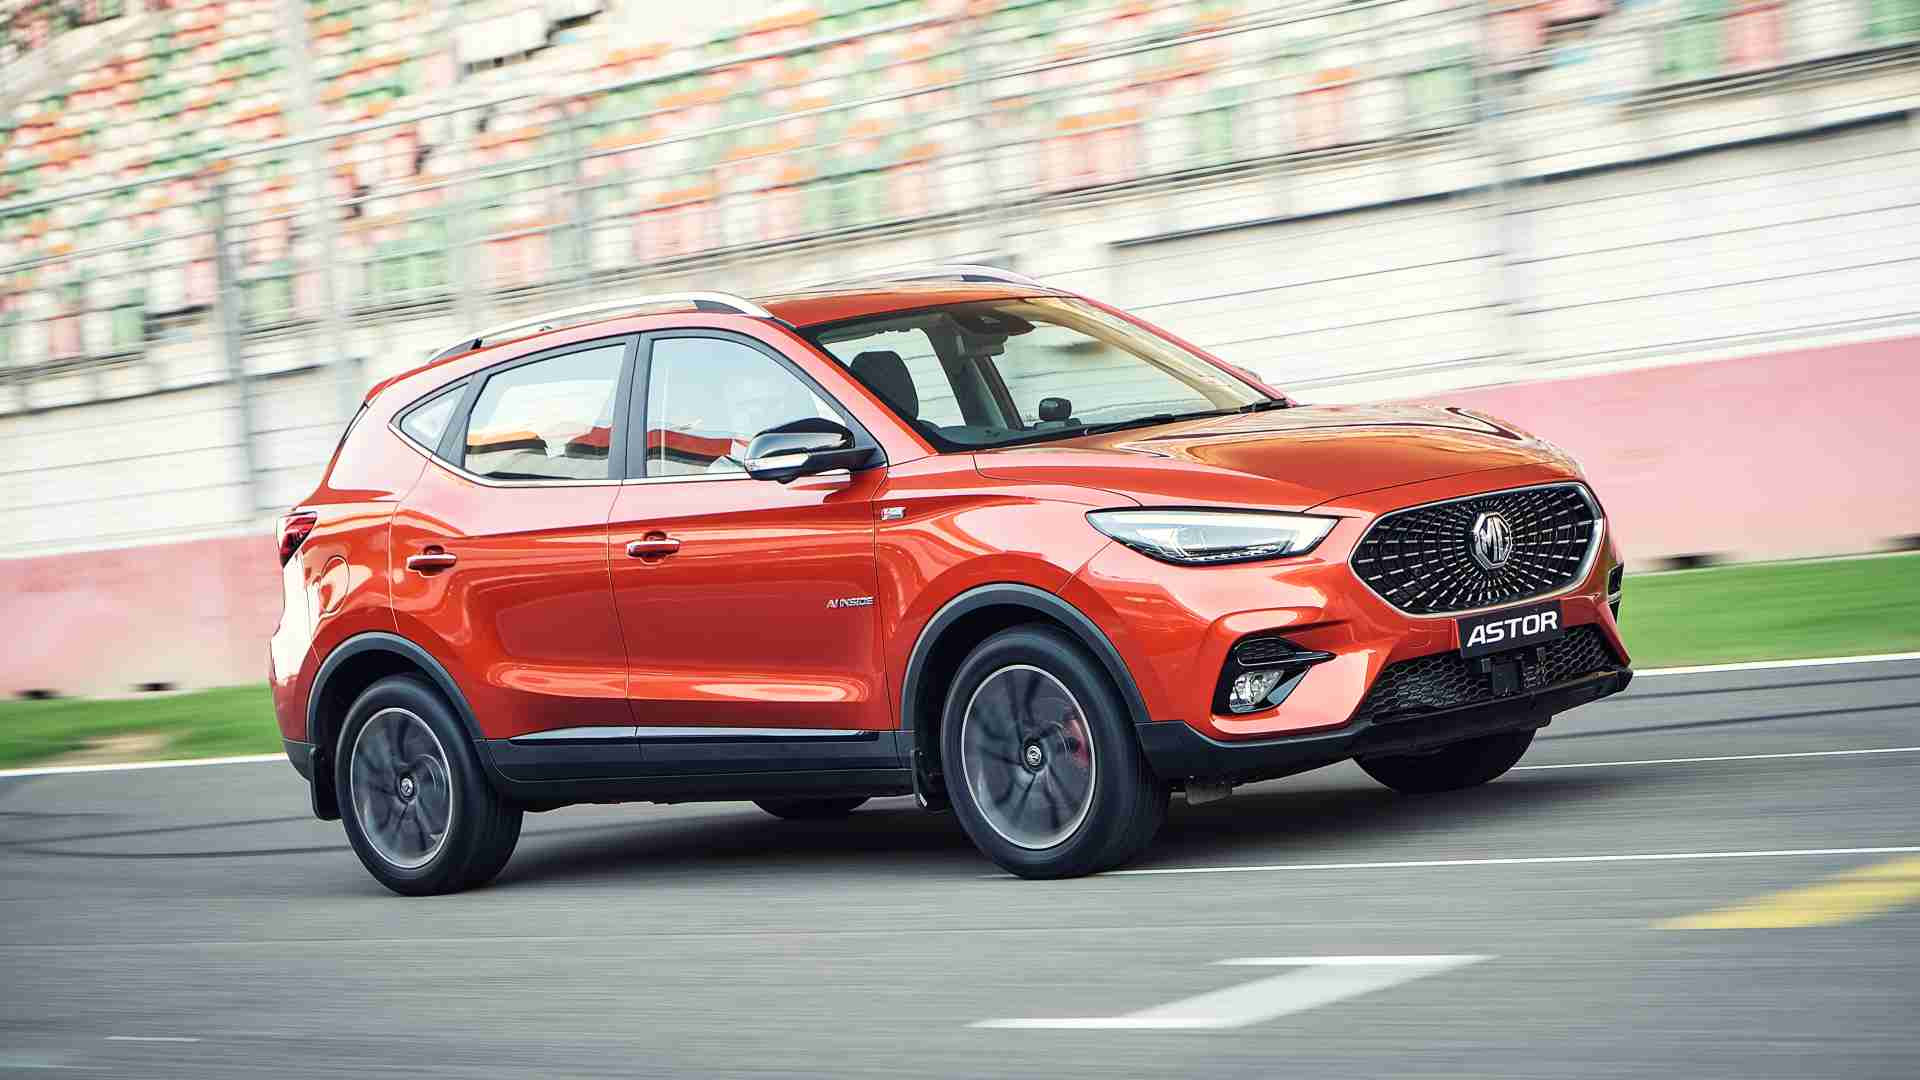 MG expects ADAS to be a USP for the Astor in the midsize SUV space. Image: Tech2/Kartik Sadekar